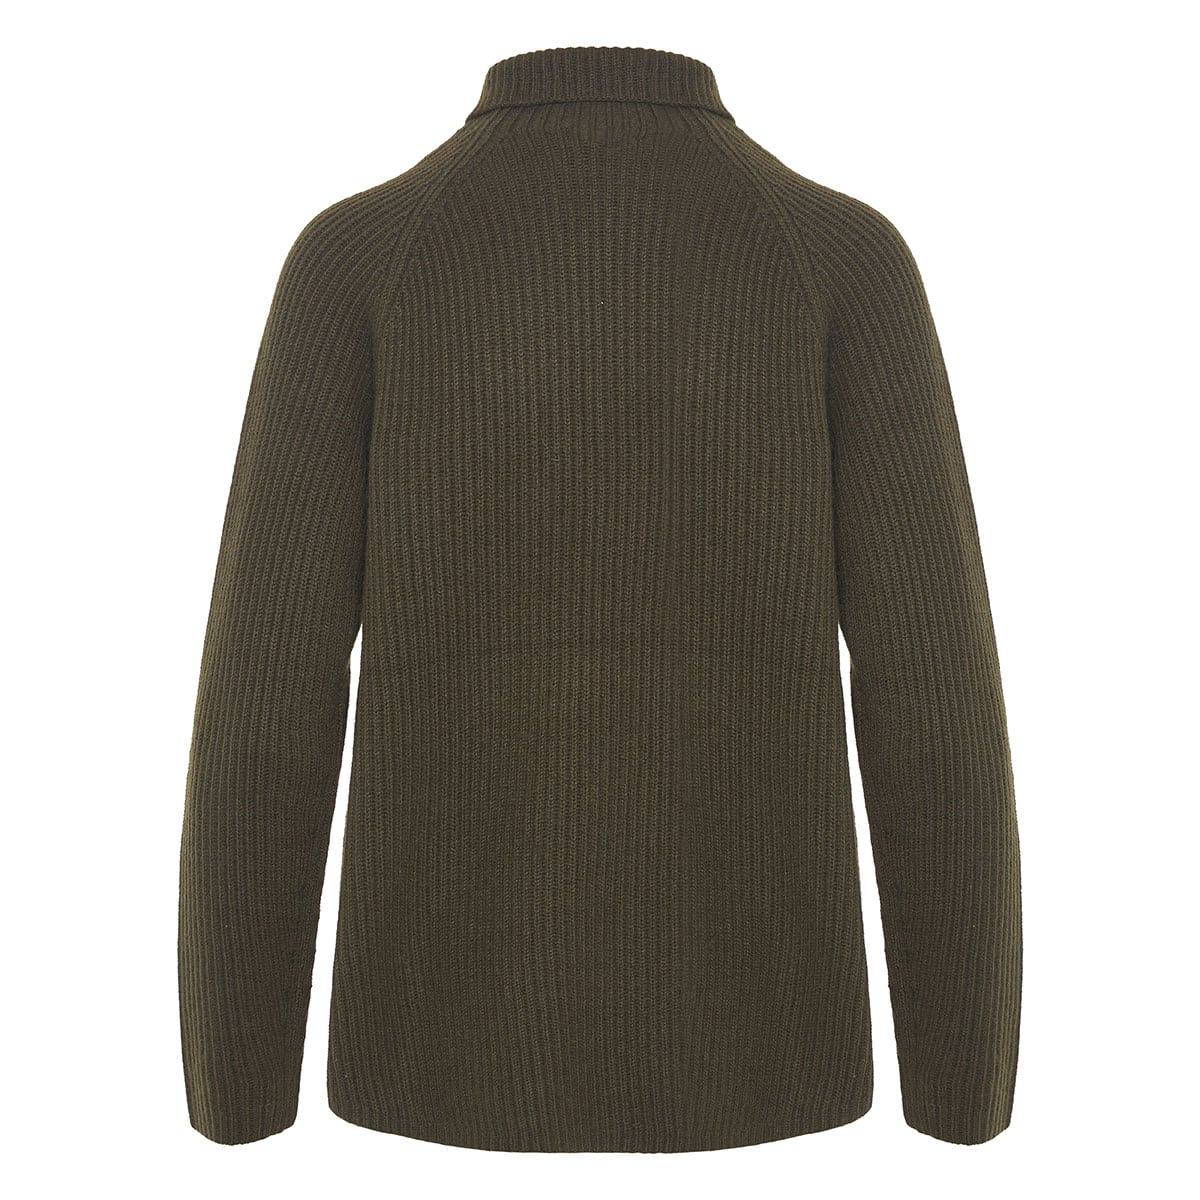 Cashmere sweater with foldable collar